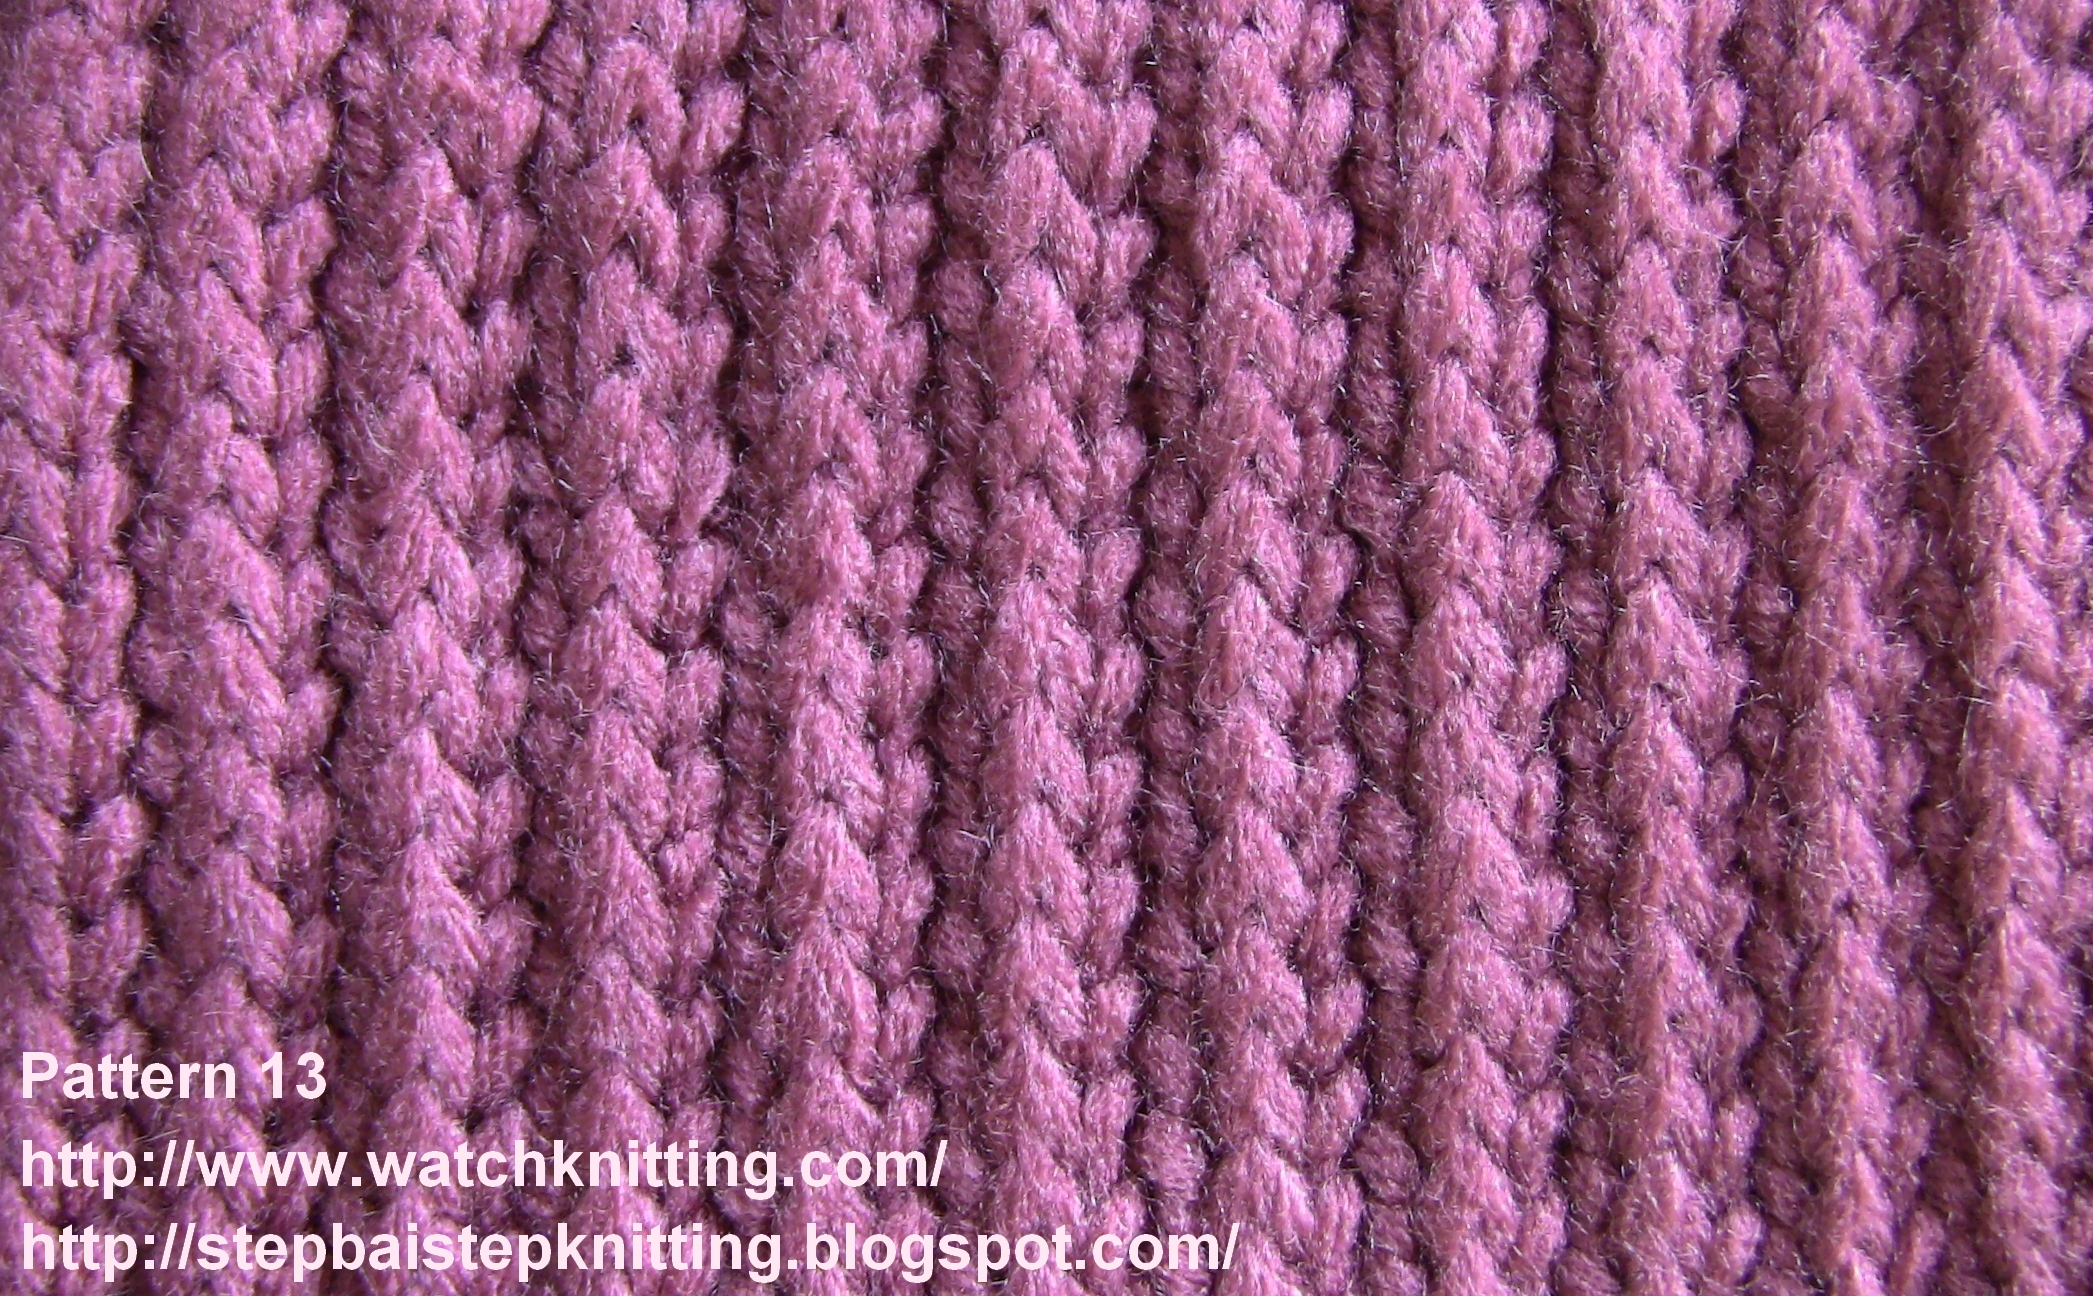 Simple Knitting Patterns : easy knitting pattern - Knitting for charity?